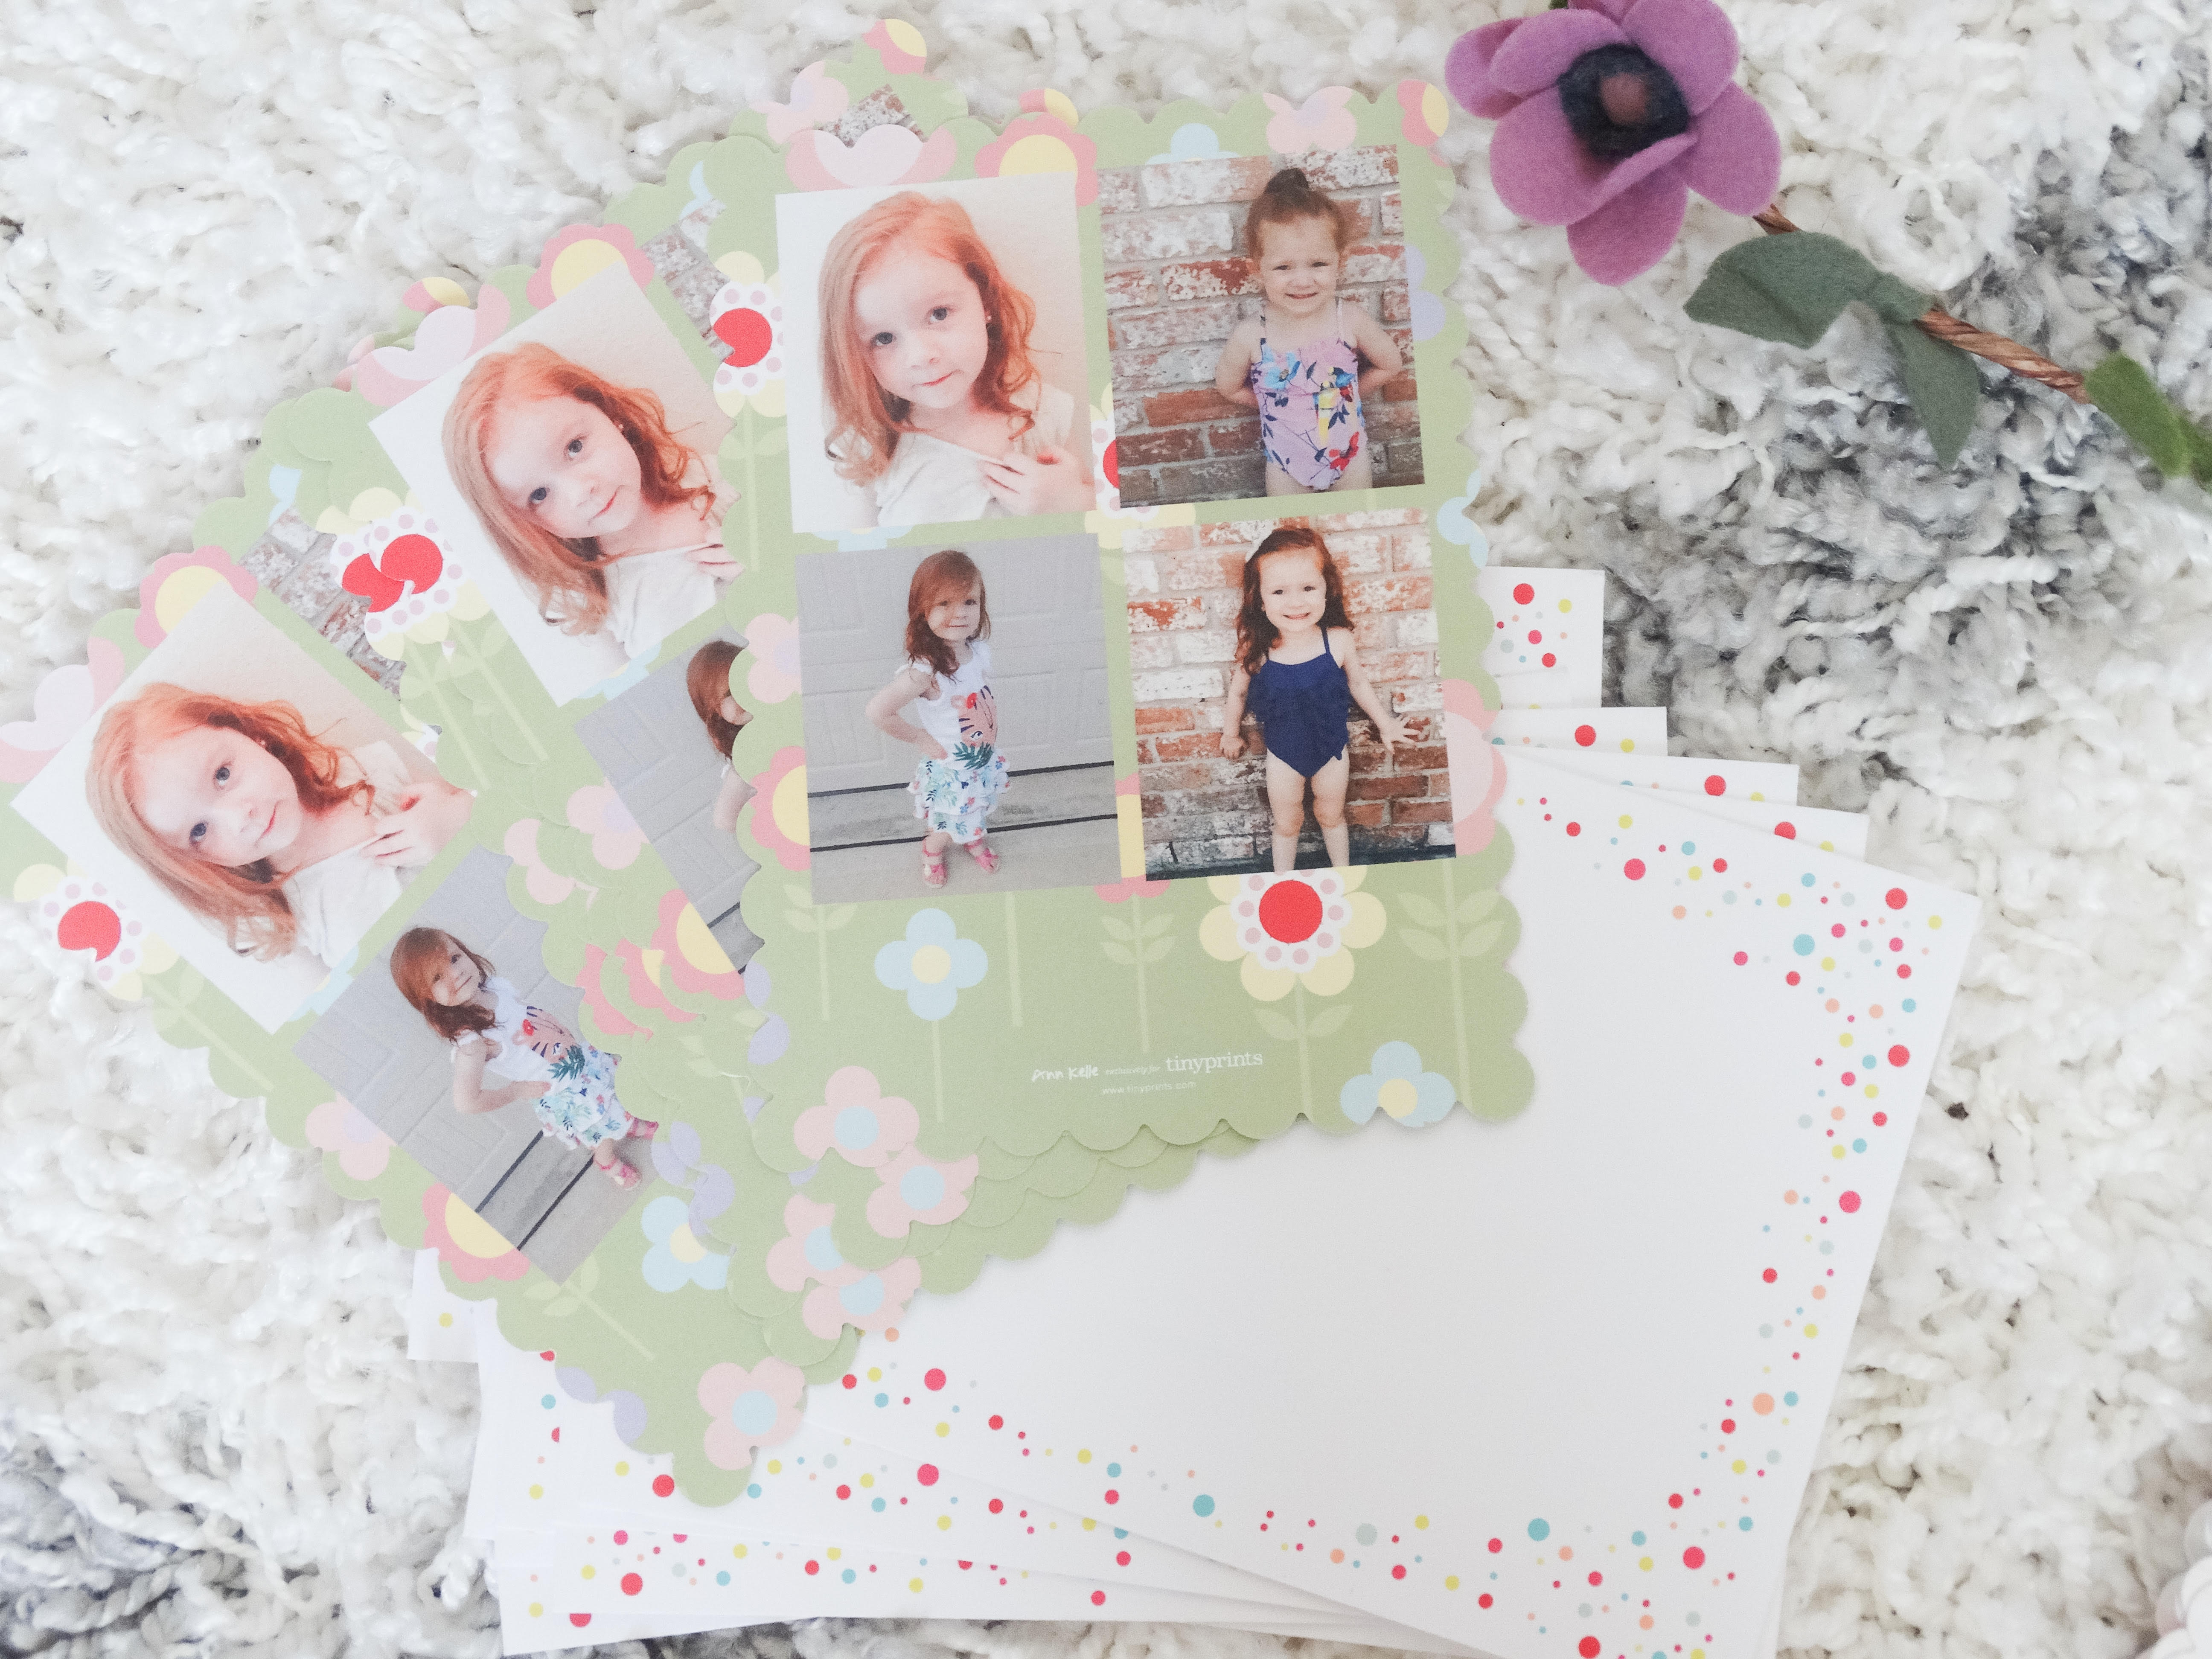 creating memories with tiny prints – the ashmores blog